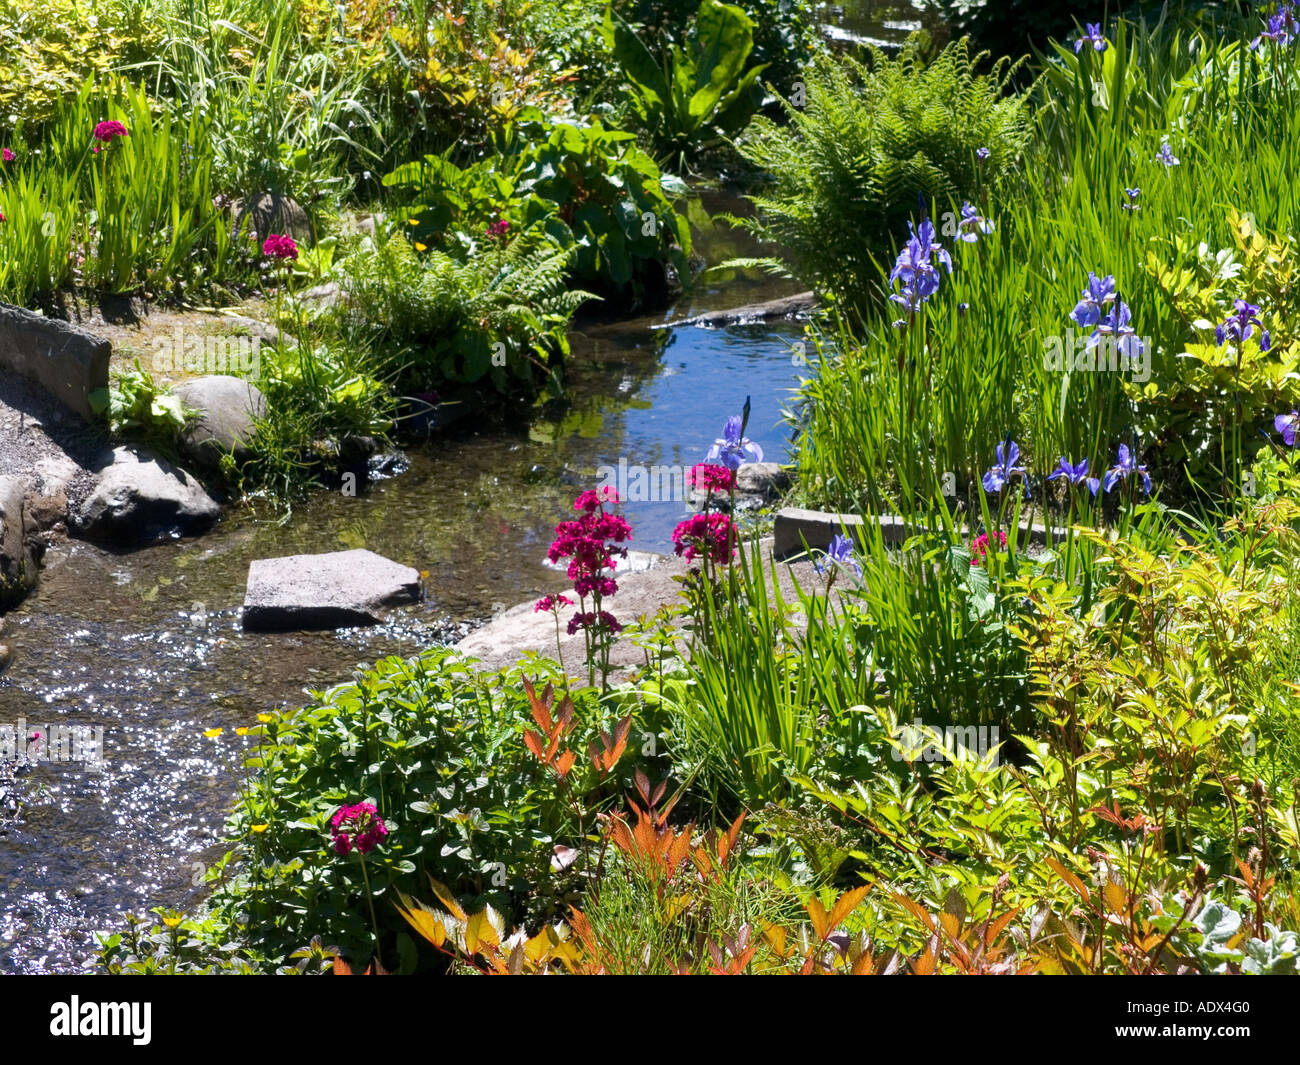 Flower bed in Keswick Park.Cumbria Lake District England - Stock Image